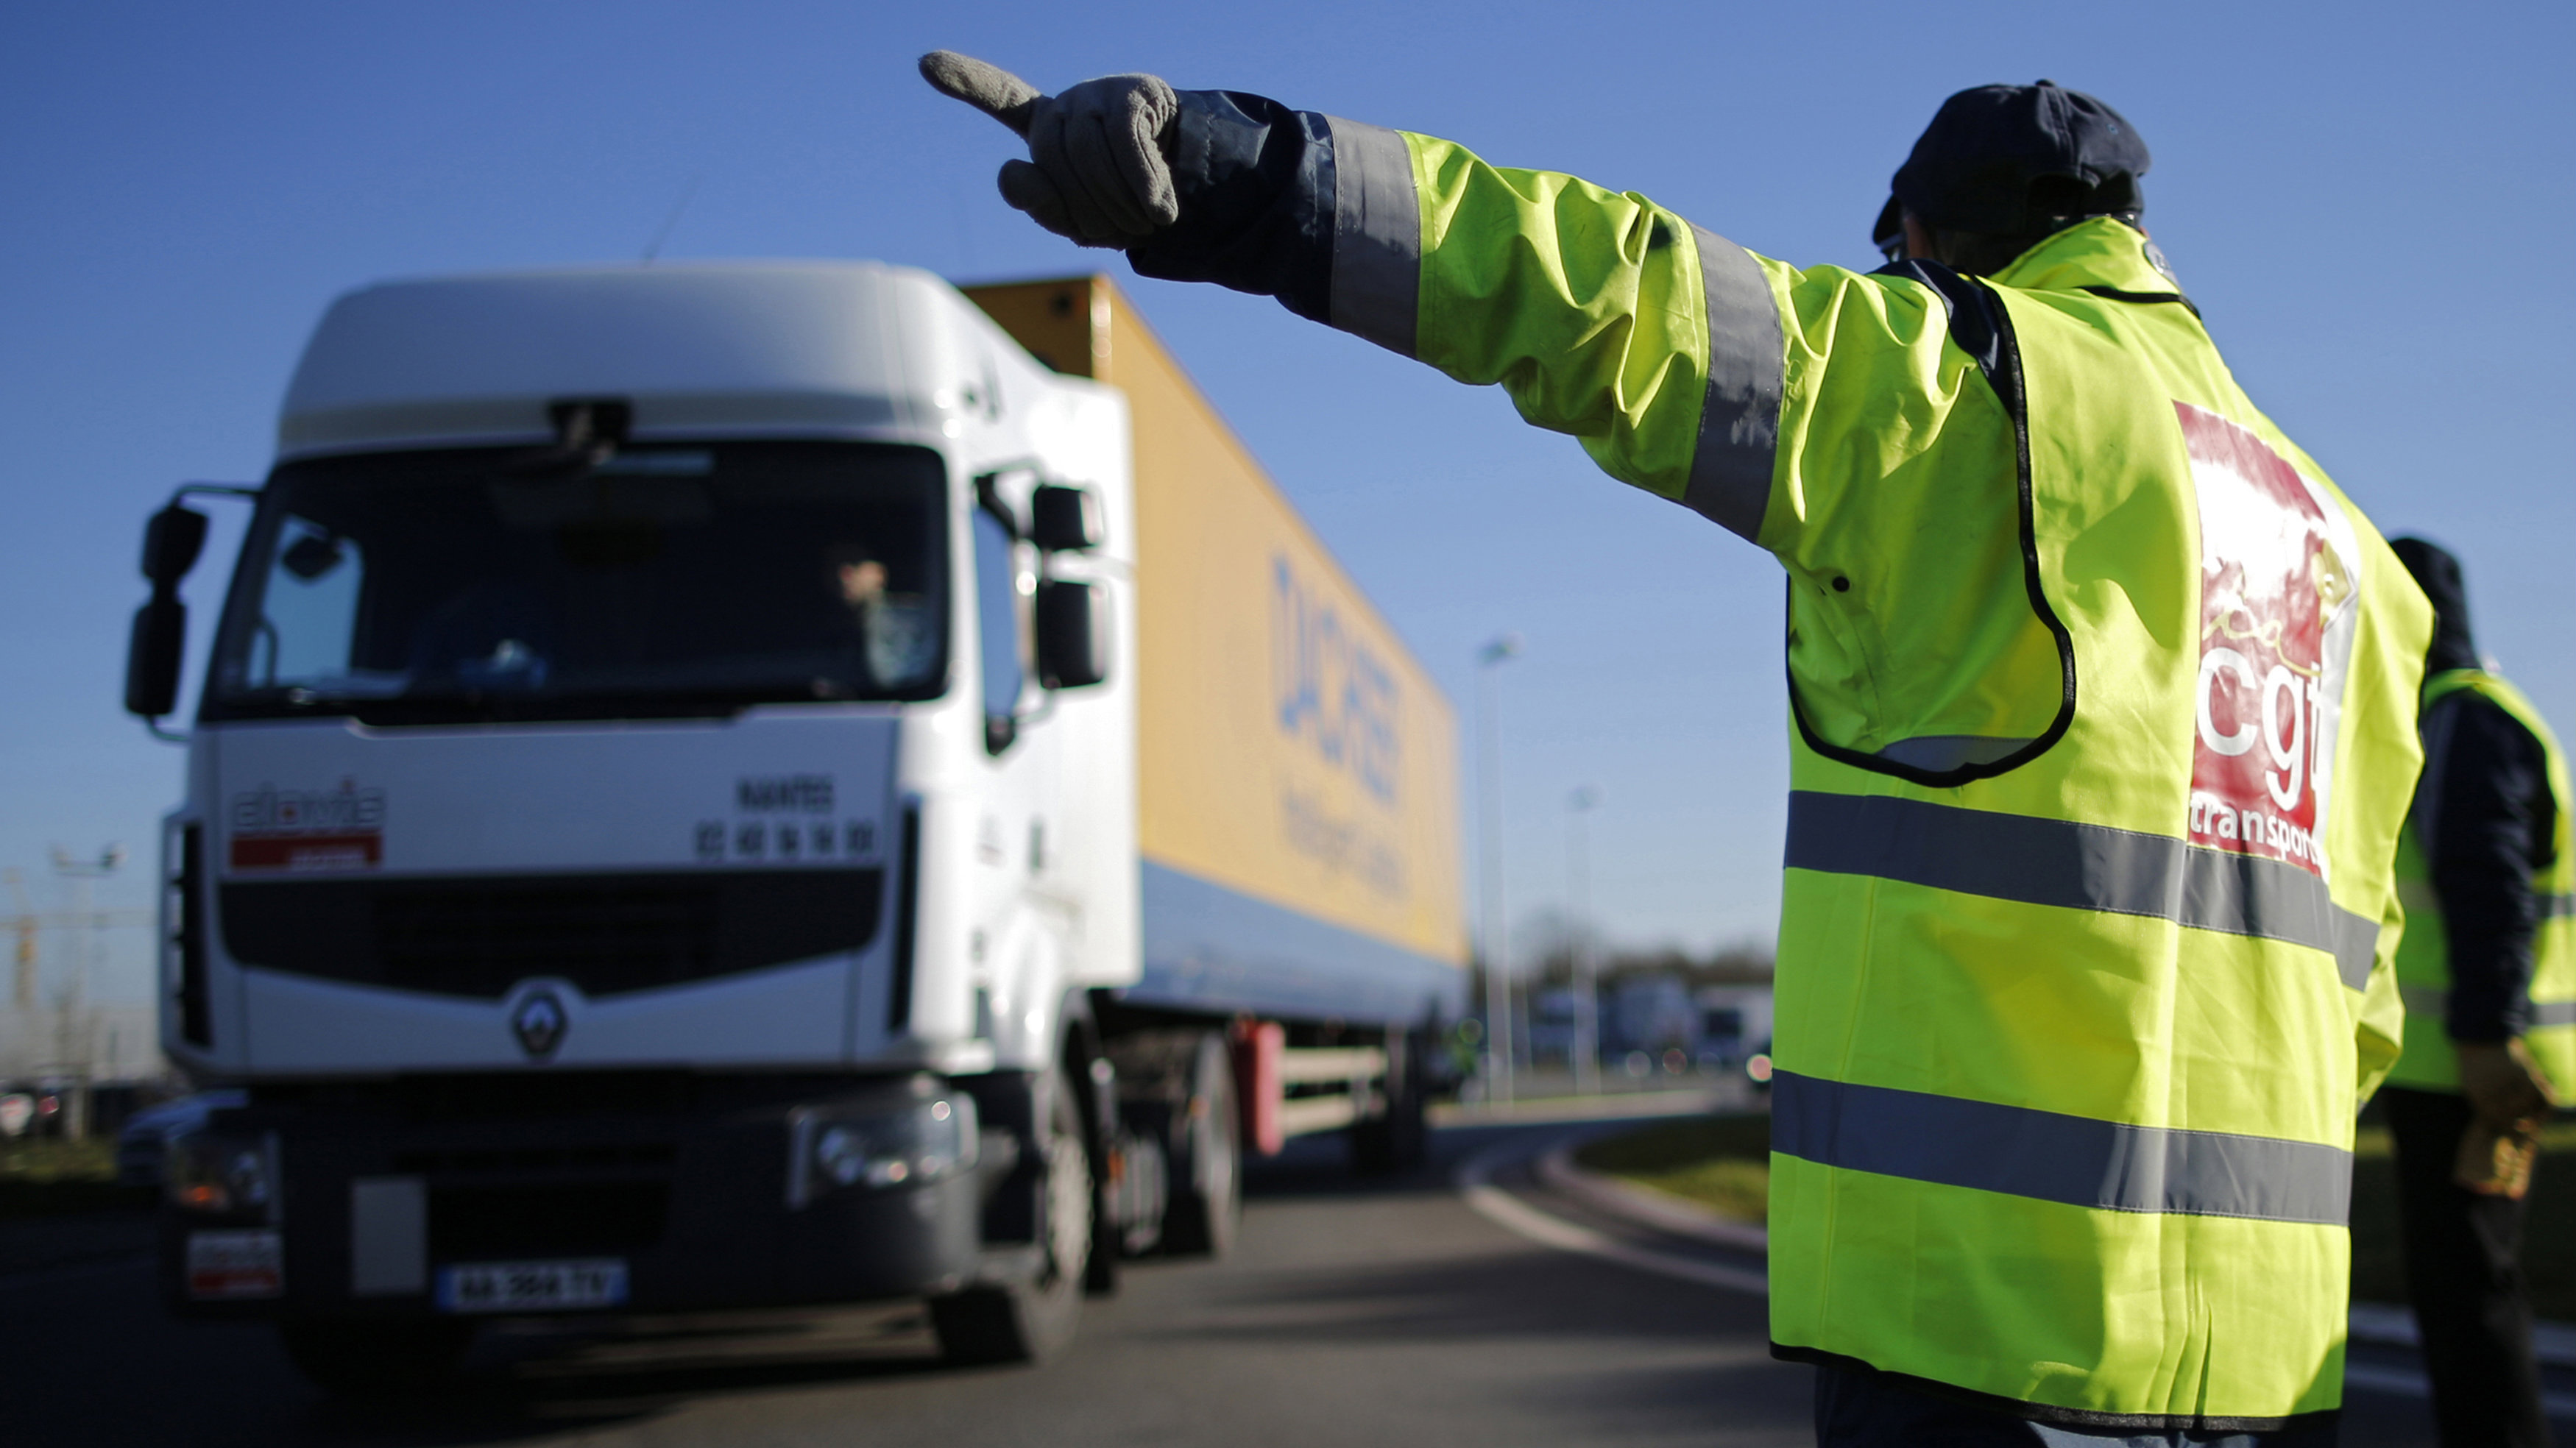 A truck driver wears a vest with a labour union logo as truckers stage a blockade in Carquefou near Nantes January 19, 2015. French truck drivers staged go-slow operations on highways with lorry blockades during a strike against salaries and working conditions.